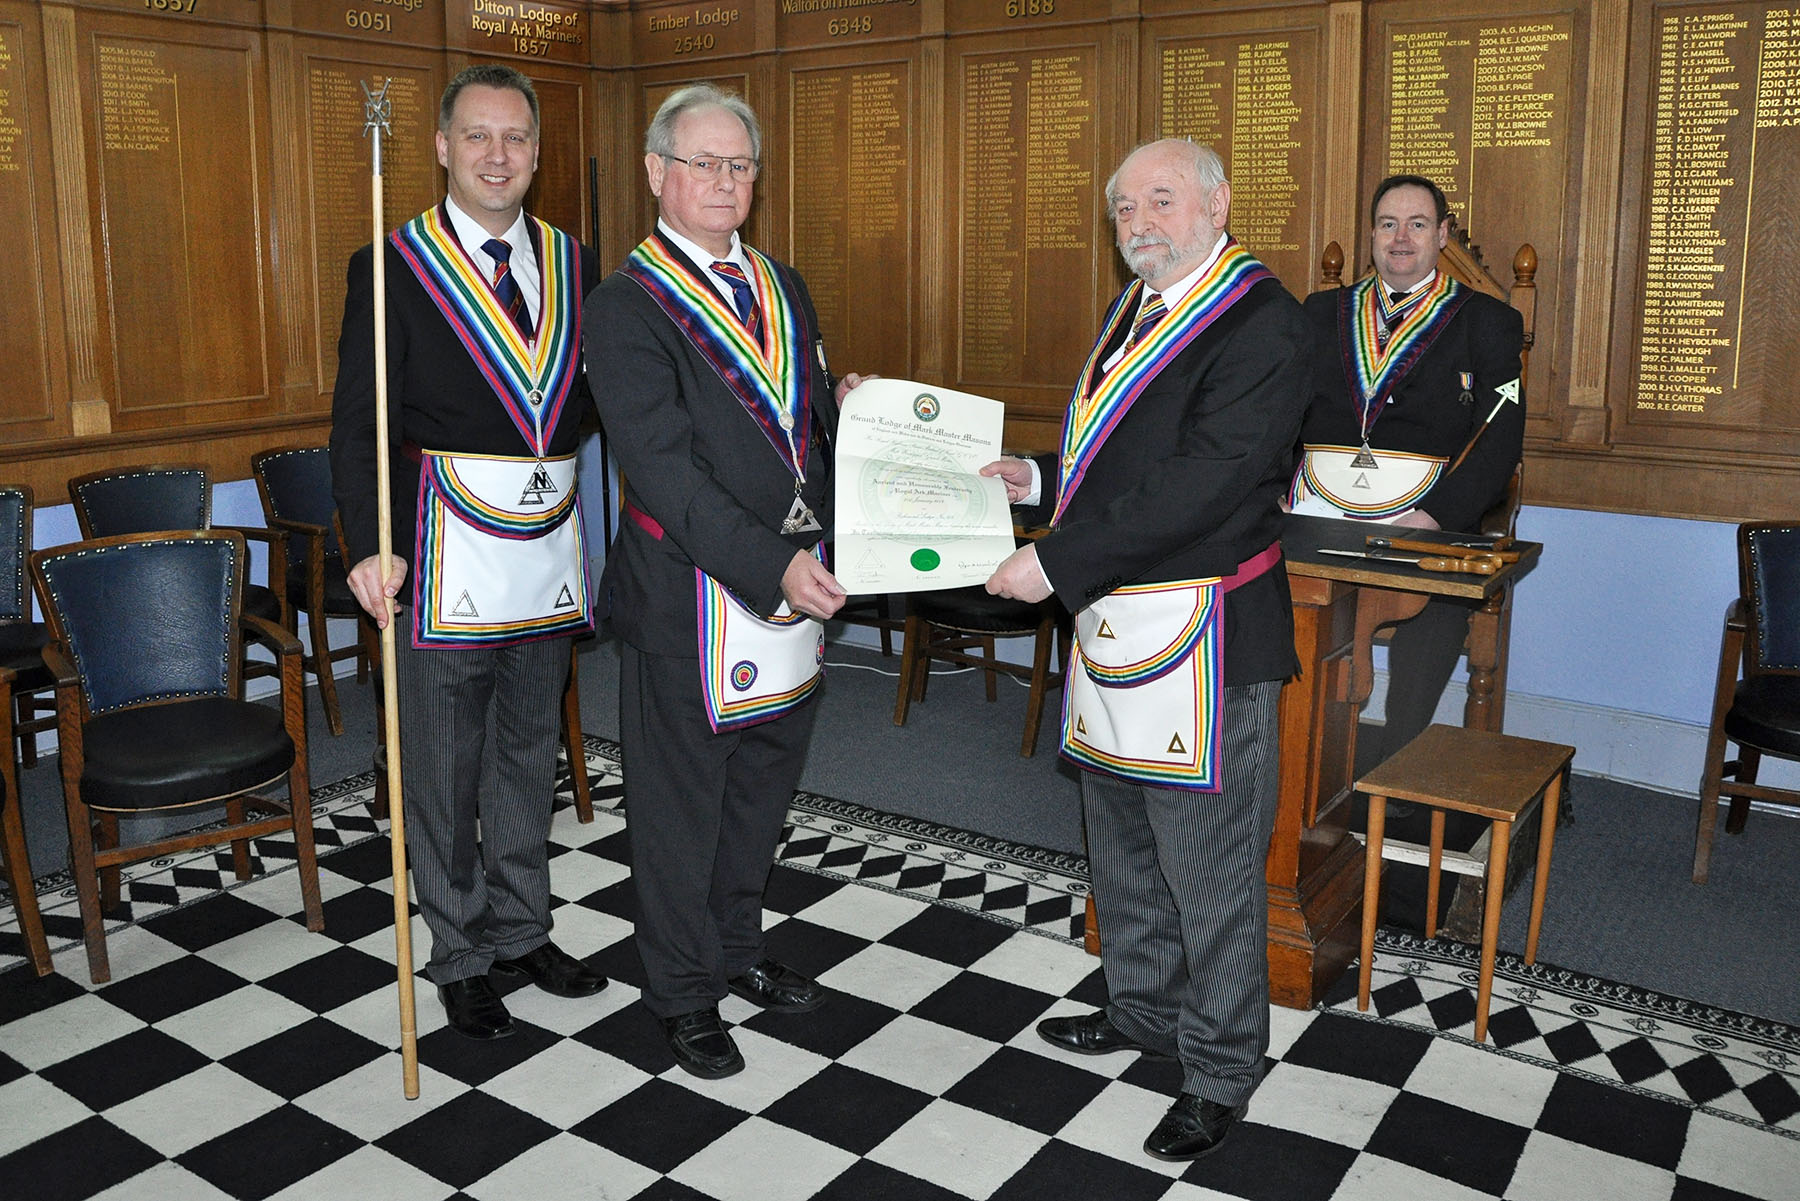 The Installation meeting of the Richmond Lodge